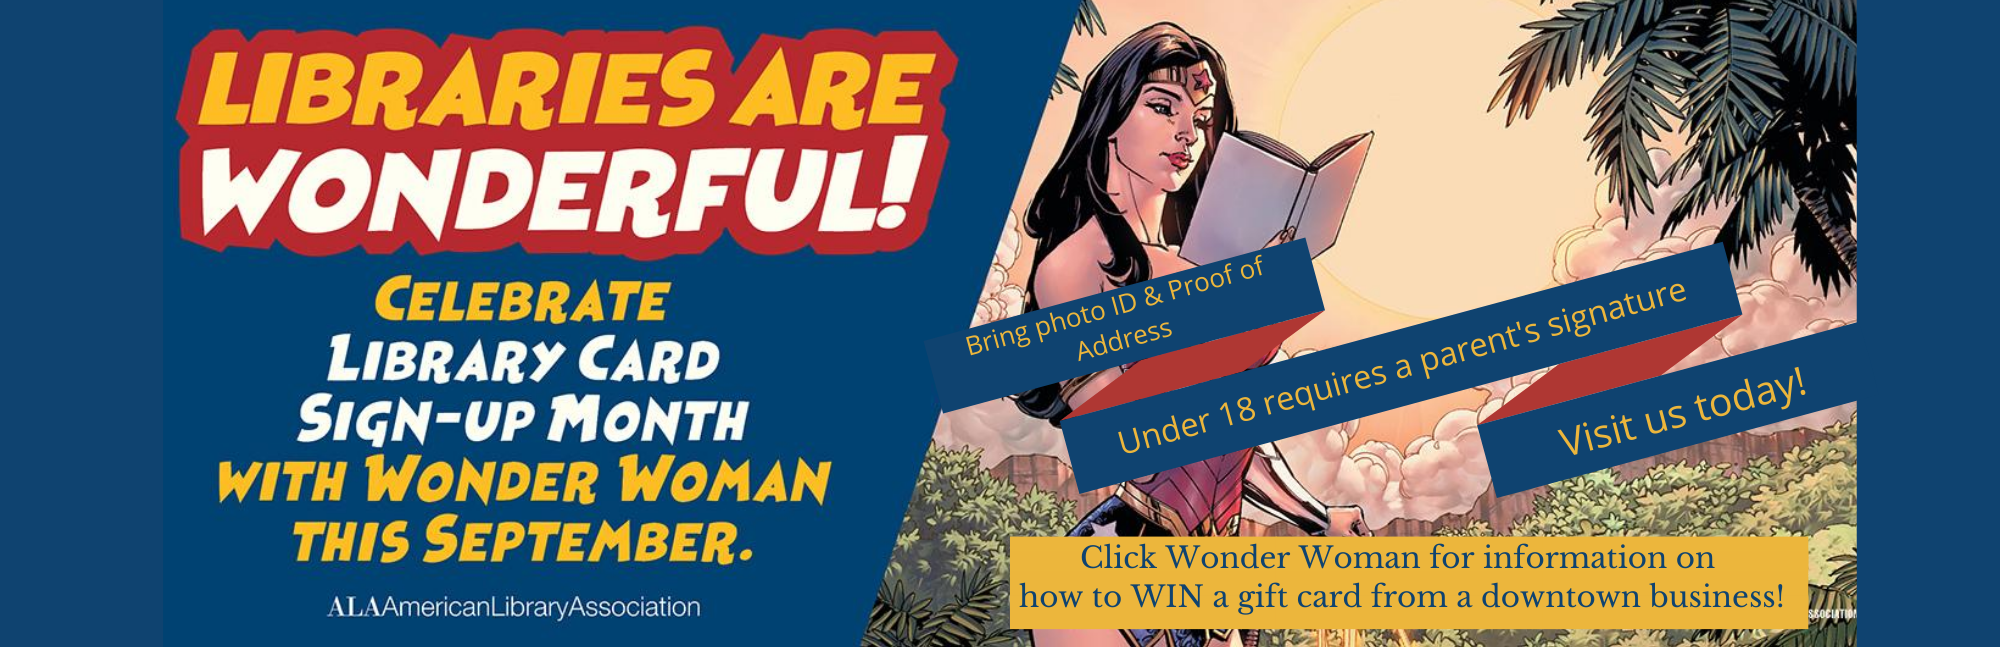 Wonder Woman reading